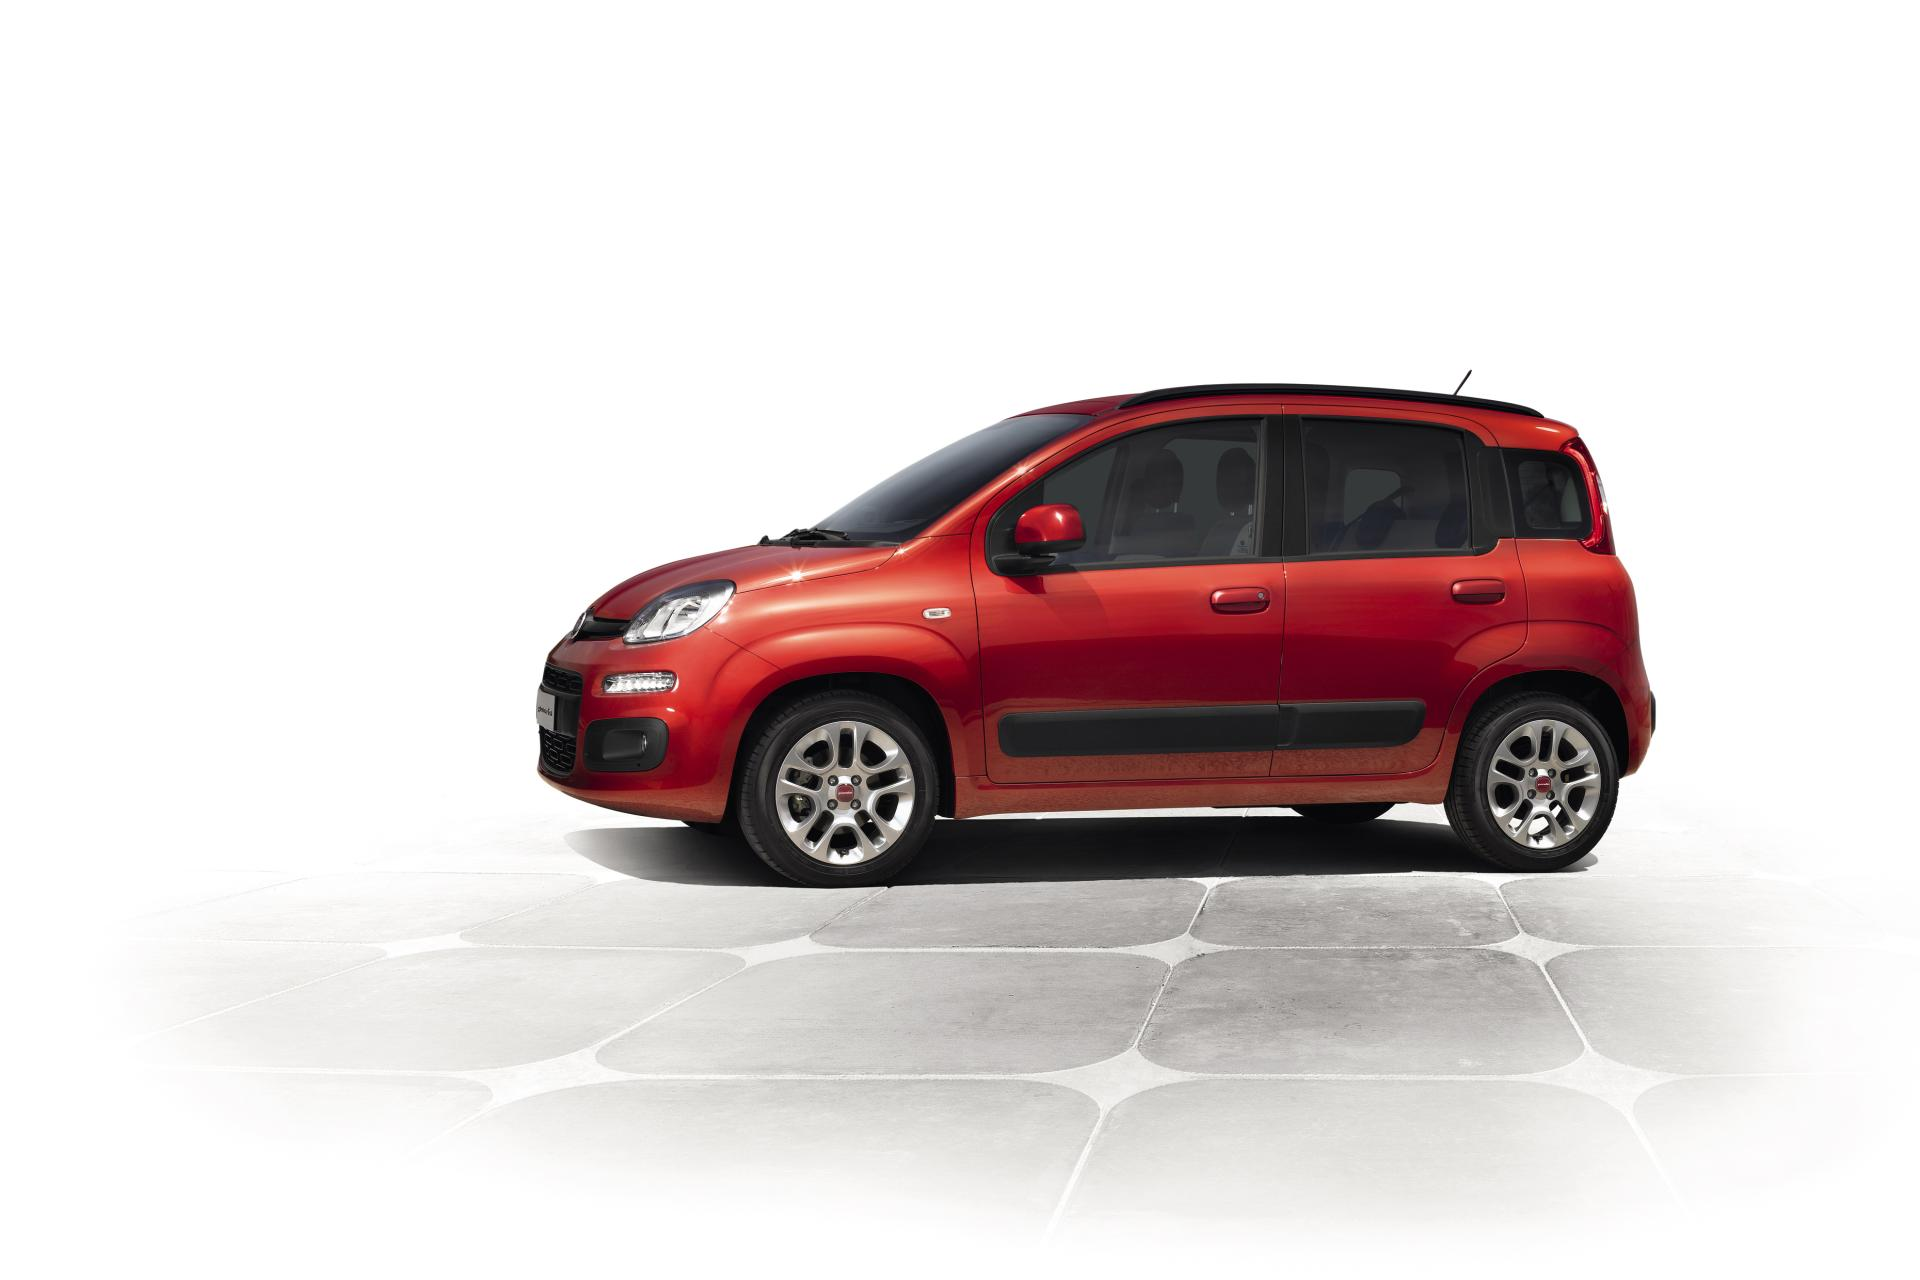 Right Price Auto Sales >> 2012 Fiat Panda - conceptcarz.com